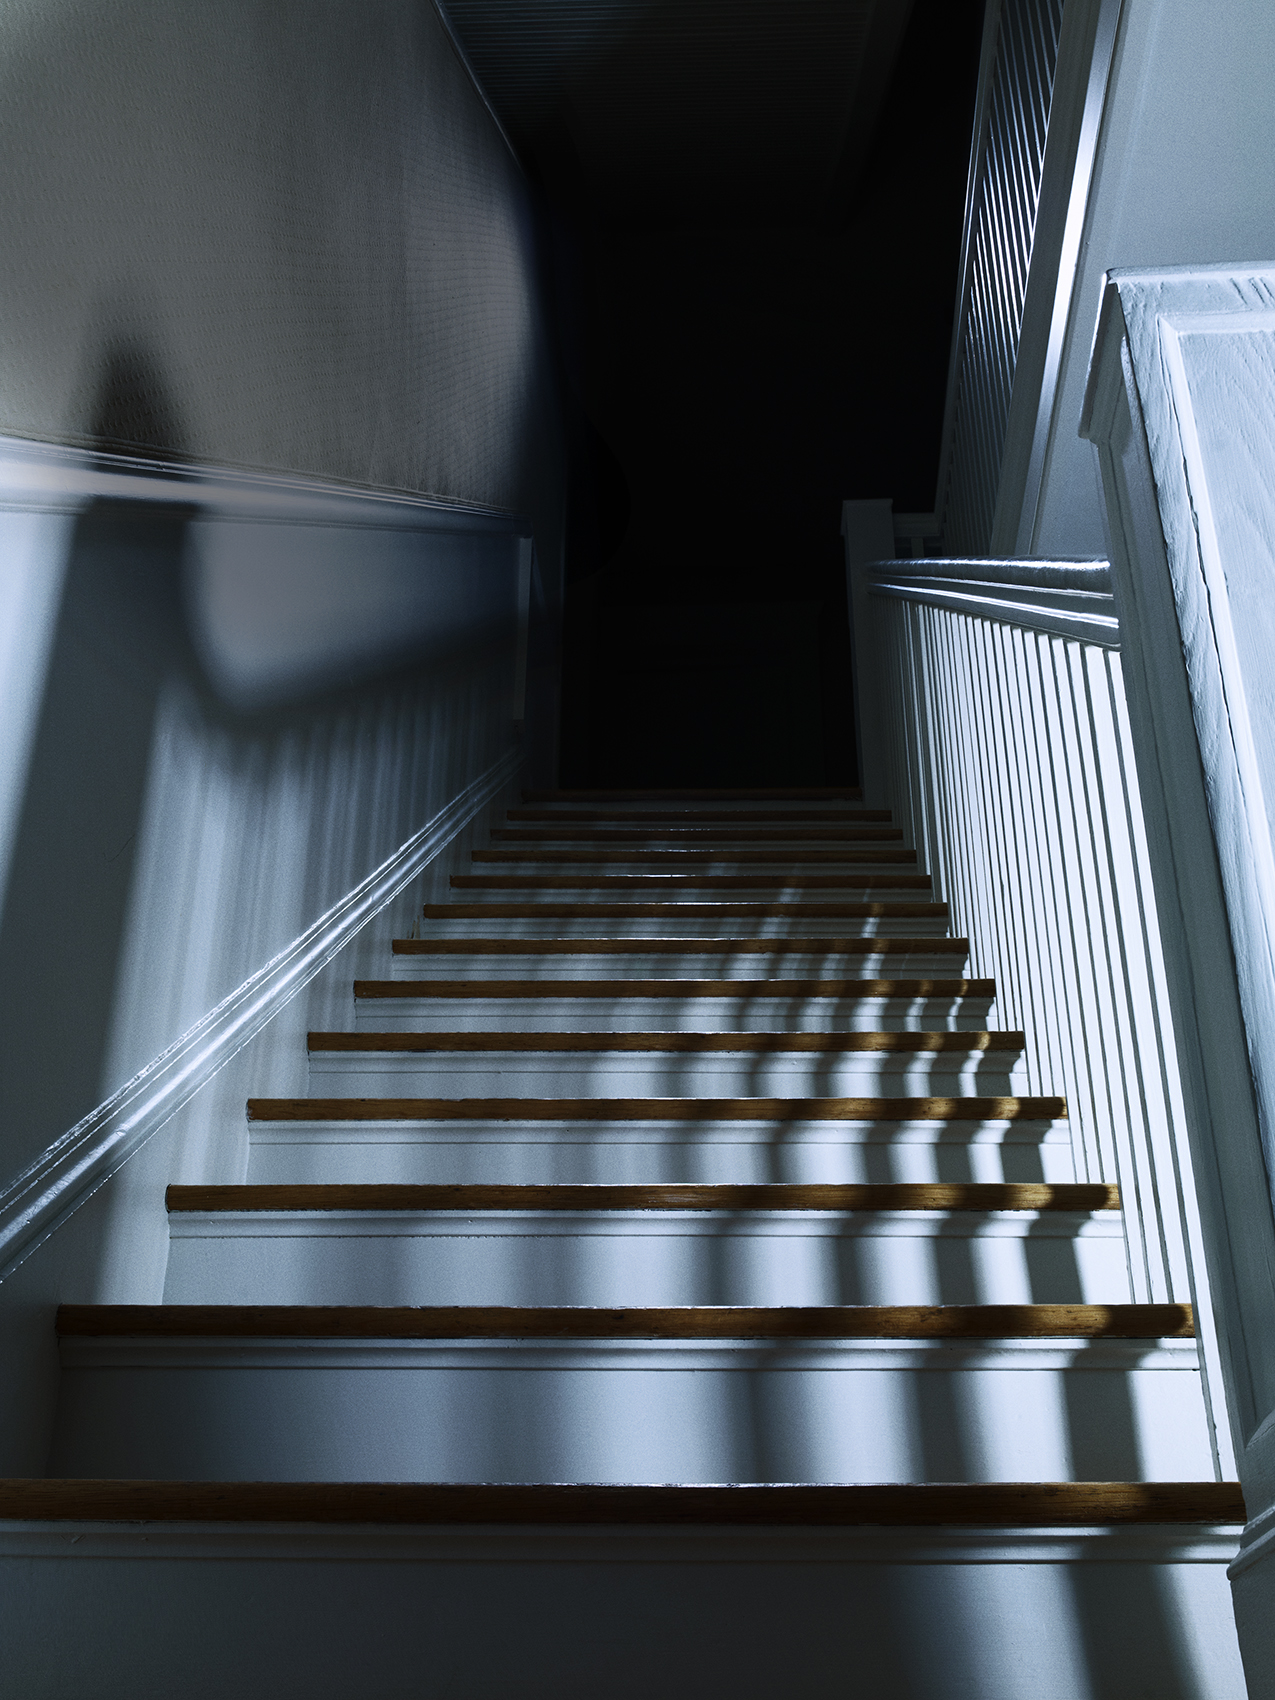 Shadowy stairs